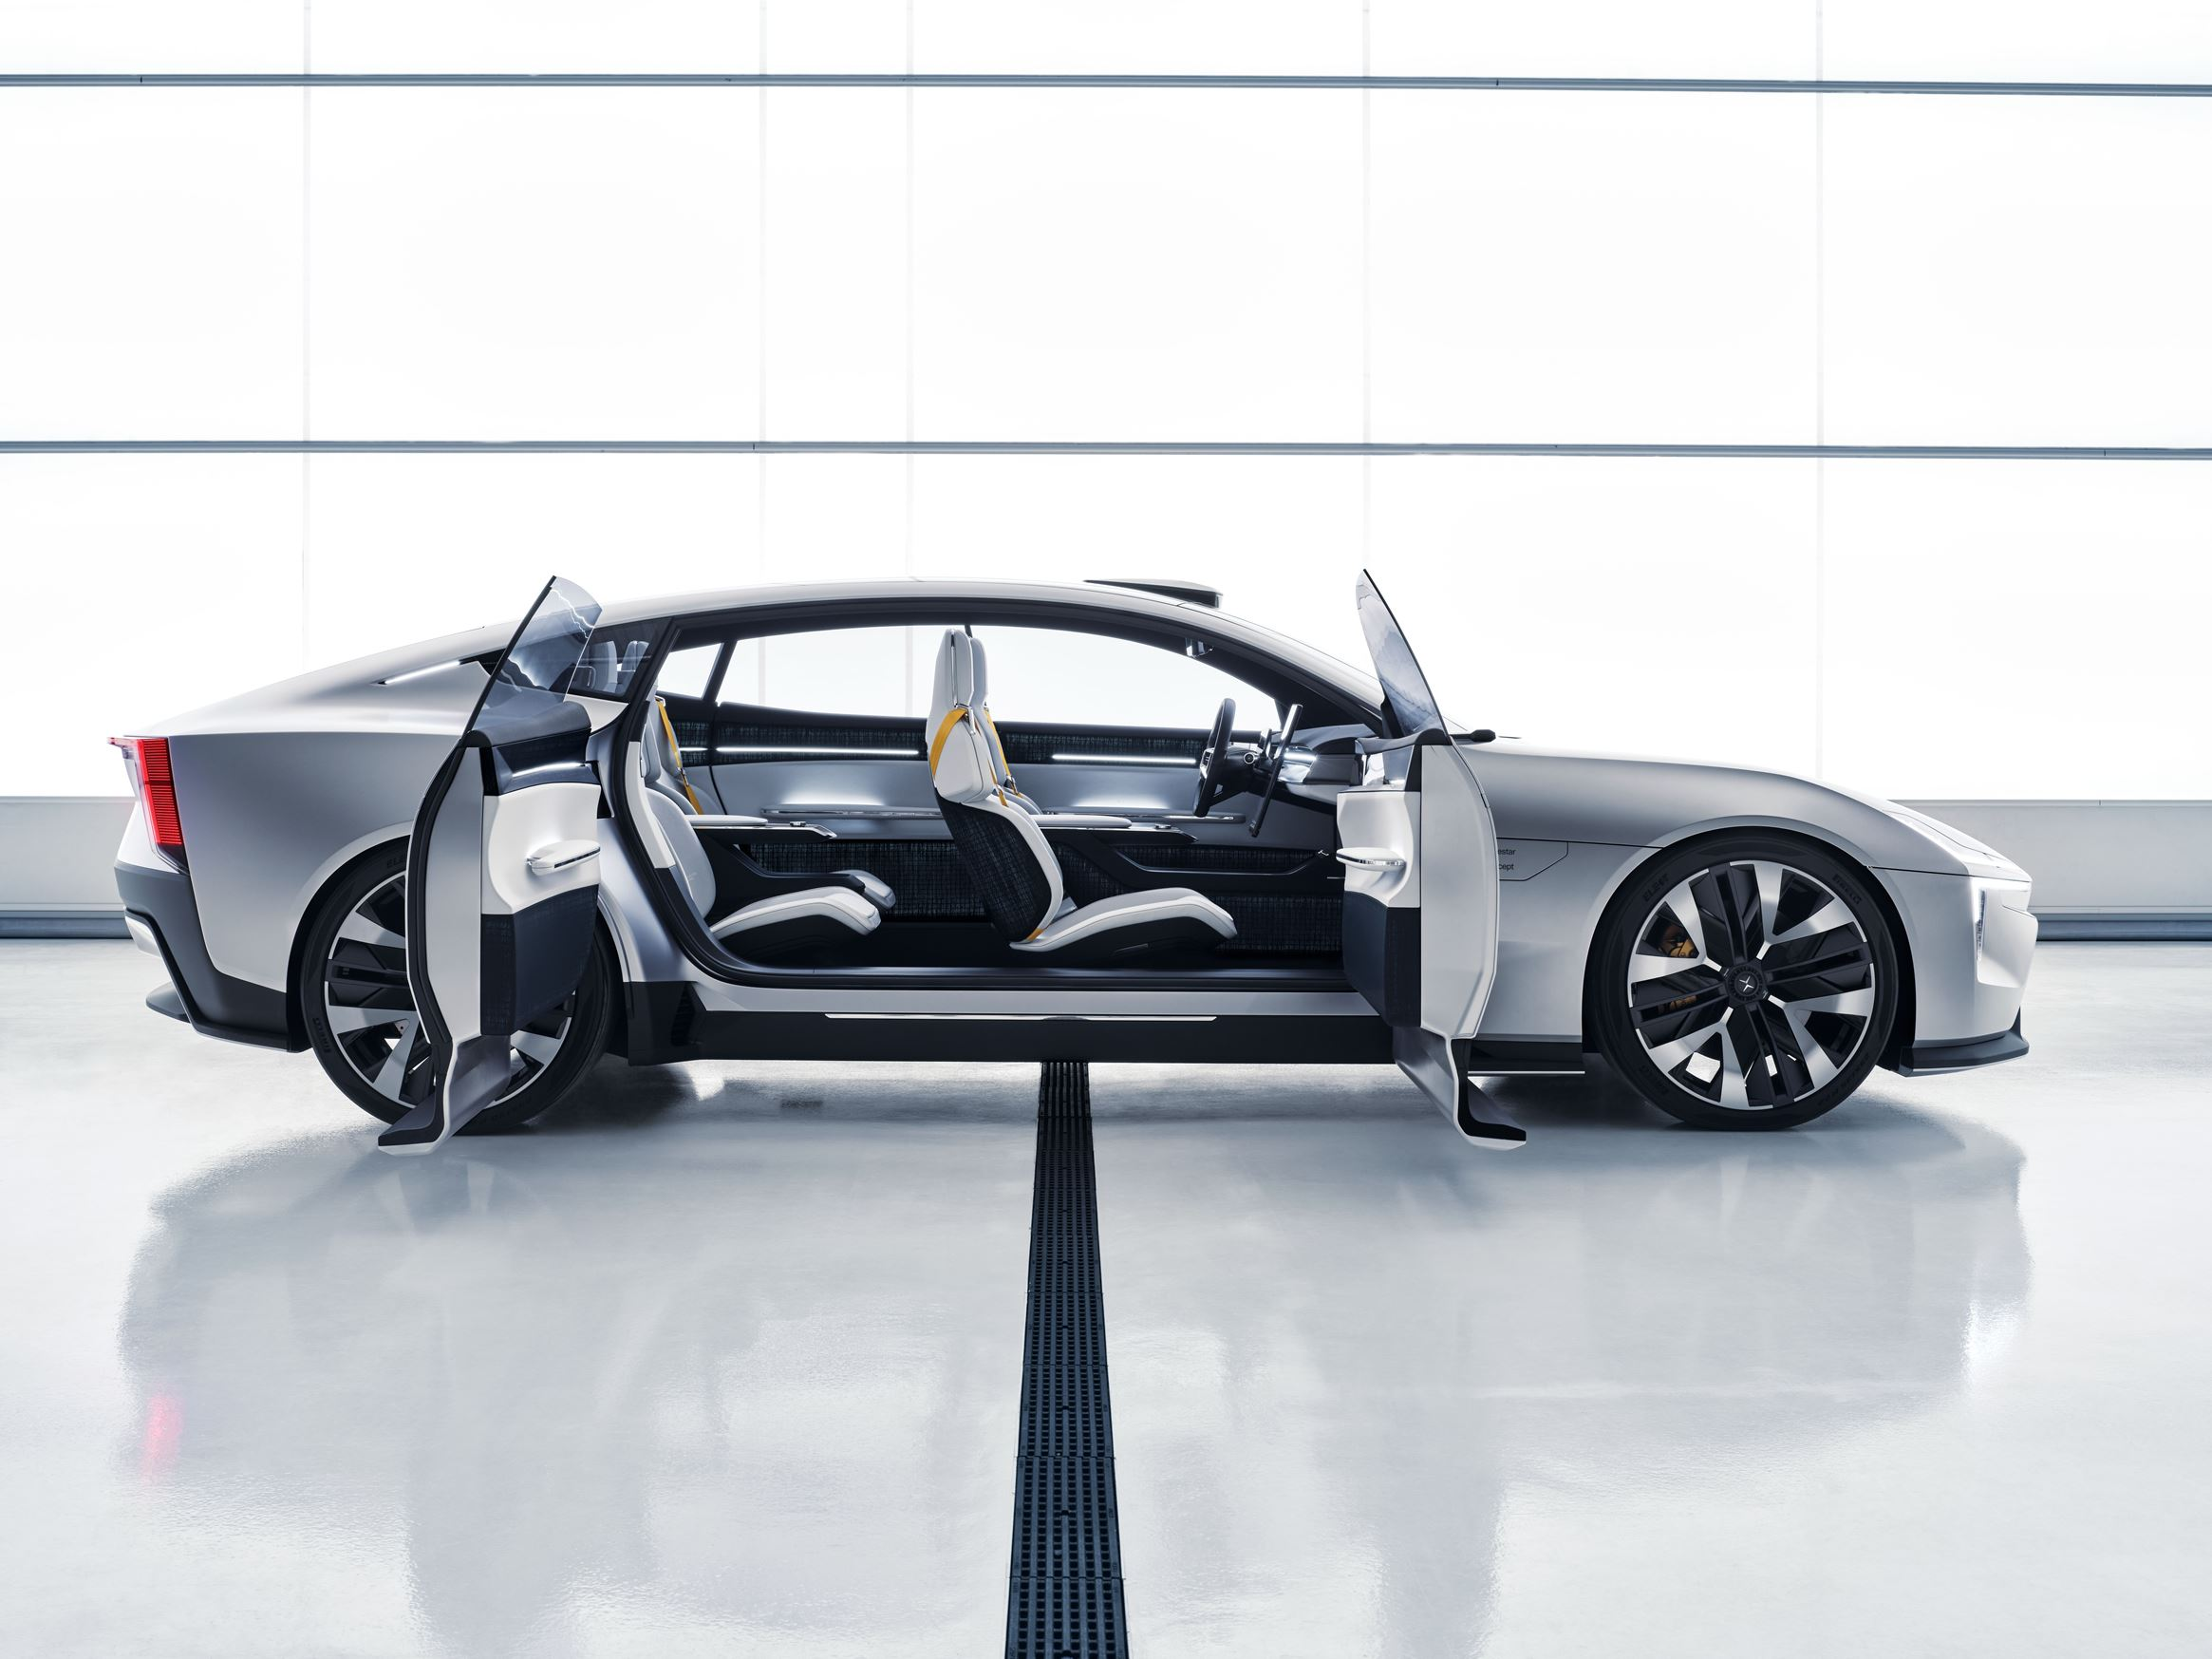 Mercedes solid-state batteries, California's grid, Polestar Precept and EV platform